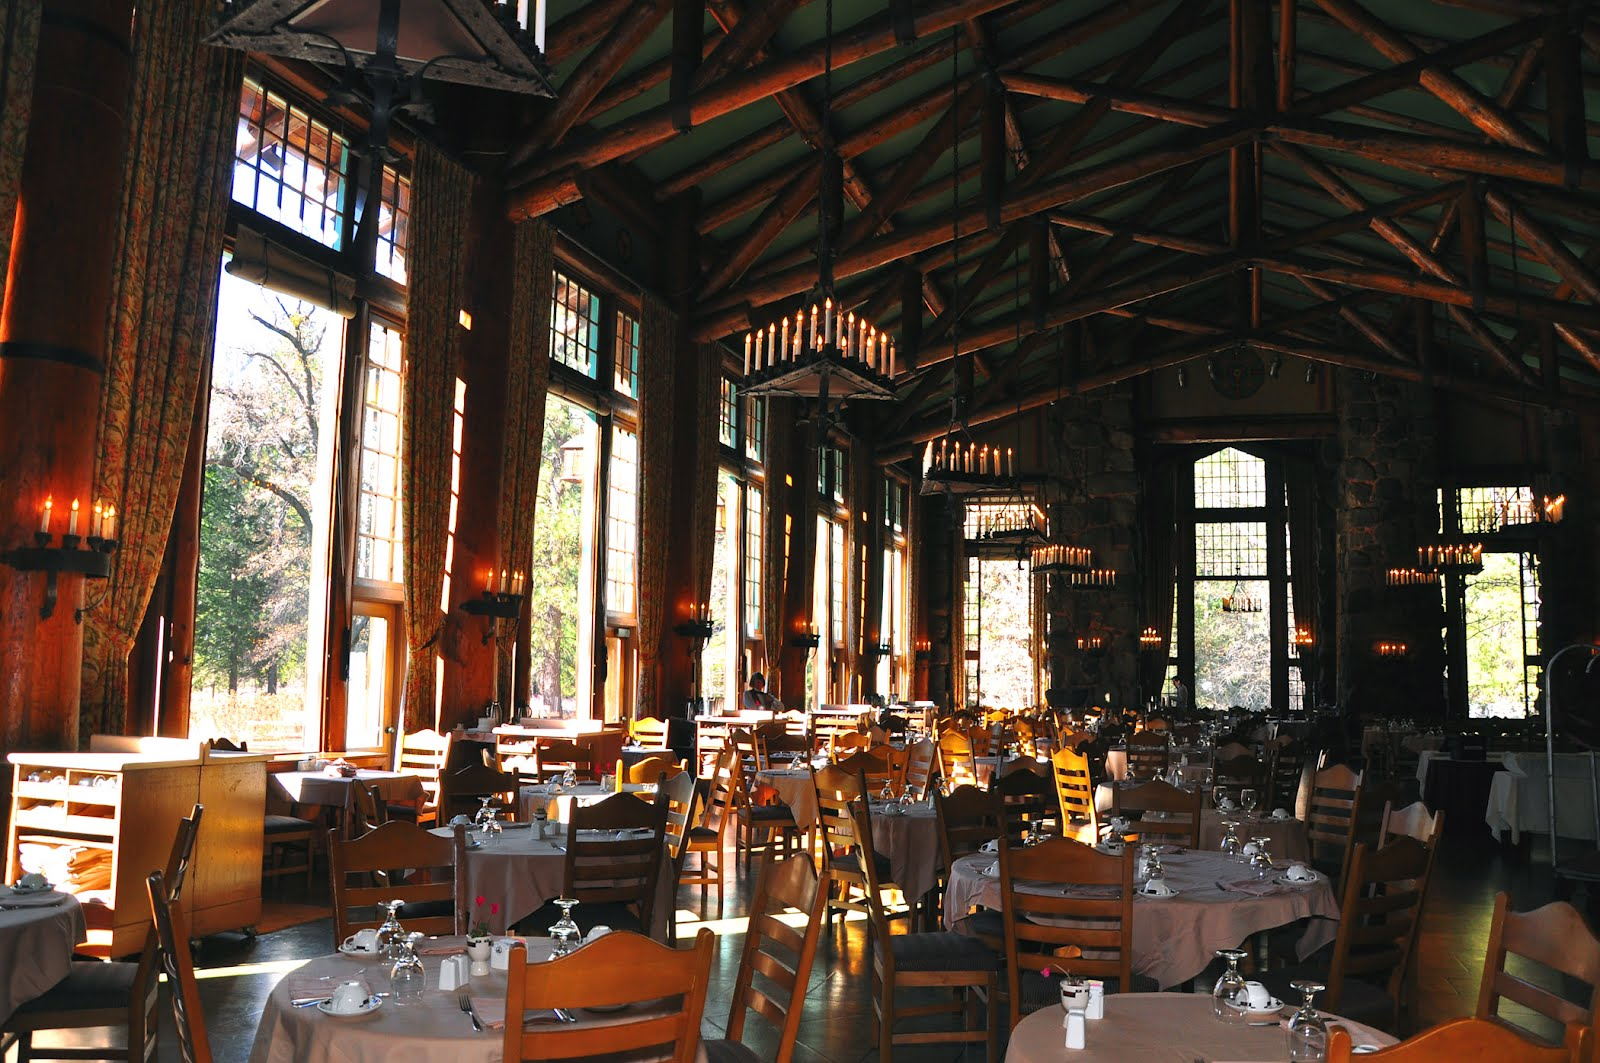 The ahwahnee hotel dining